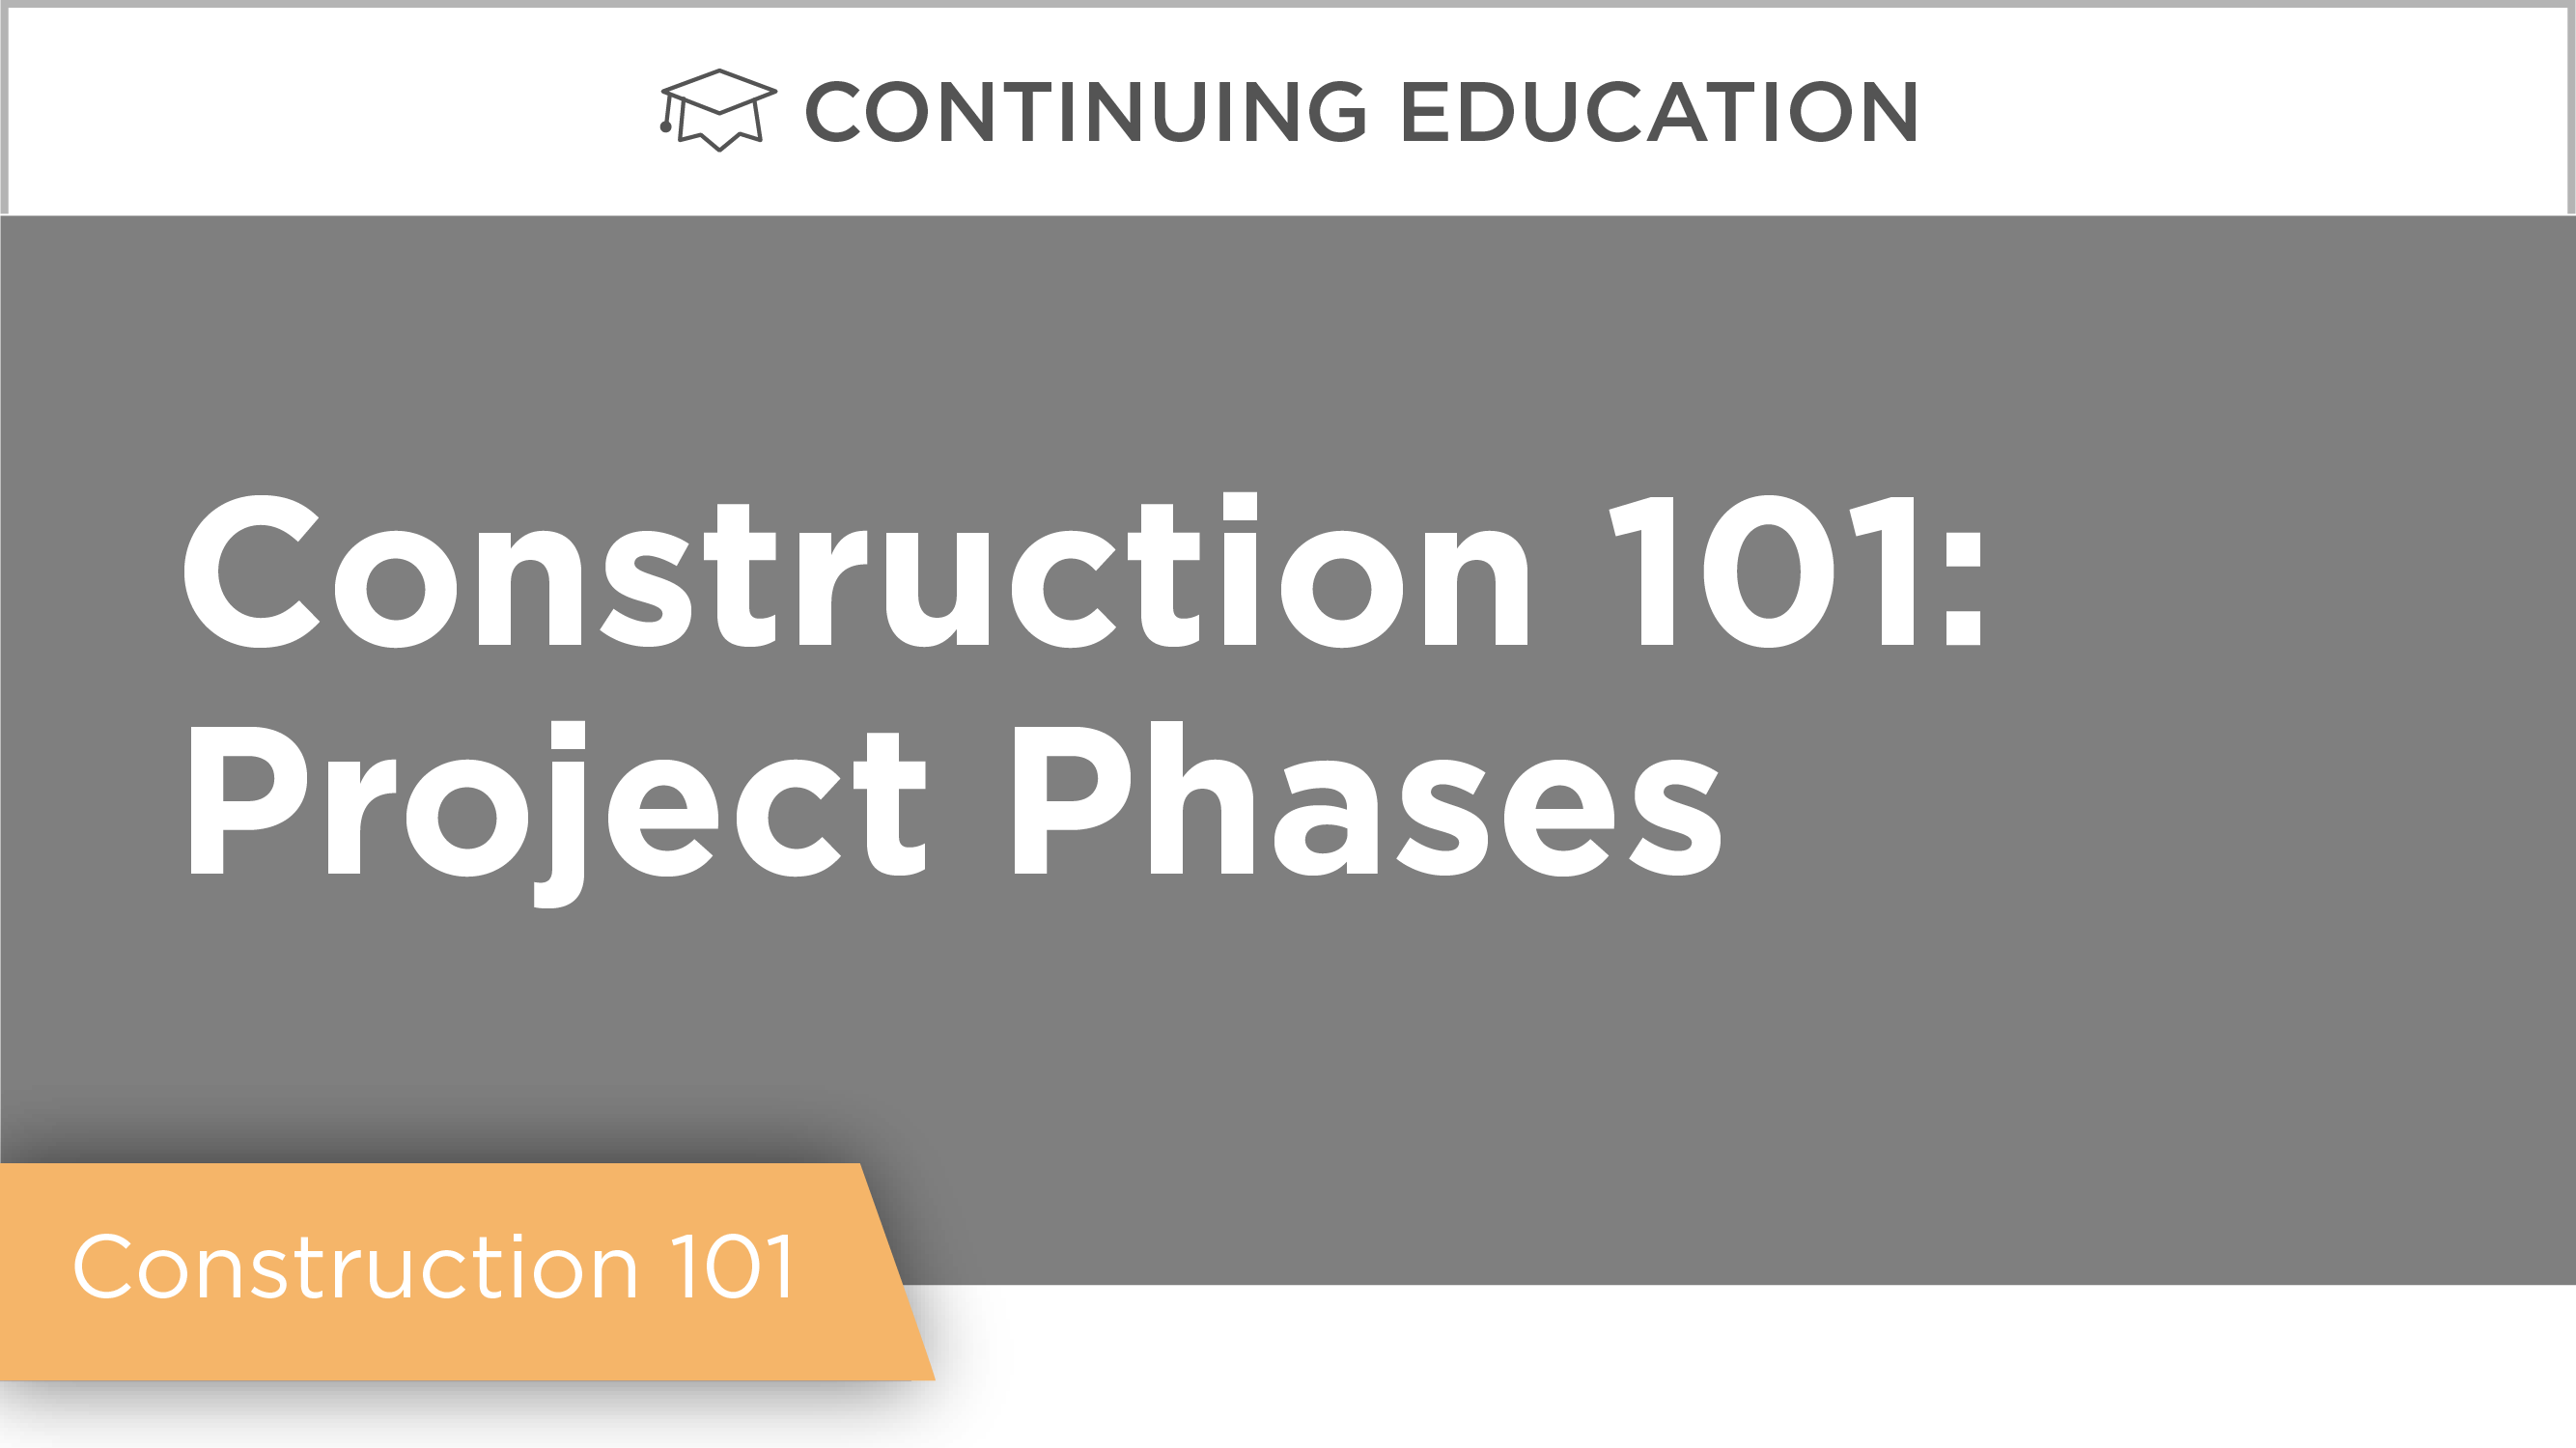 Construction 101: Project Phases